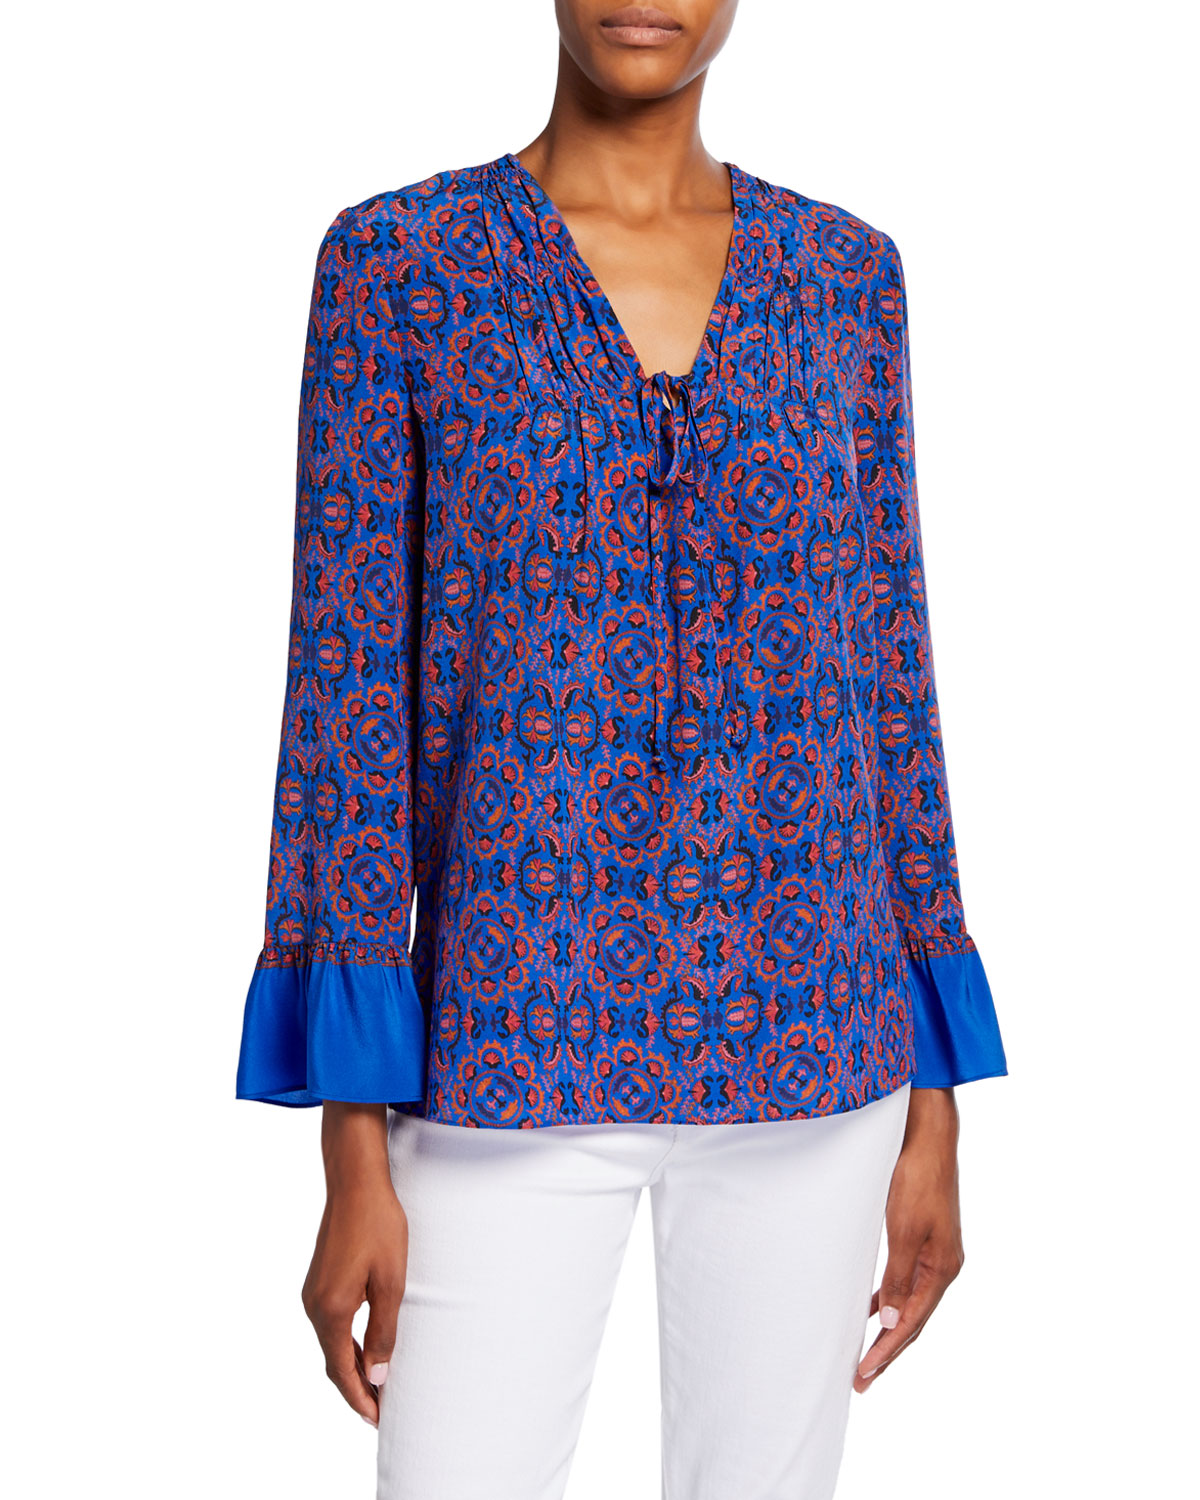 Kobi Halperin Tops ZOEY PRINTED V-NECK TIE-FRONT LONG-SLEEVE SILK BLOUSE